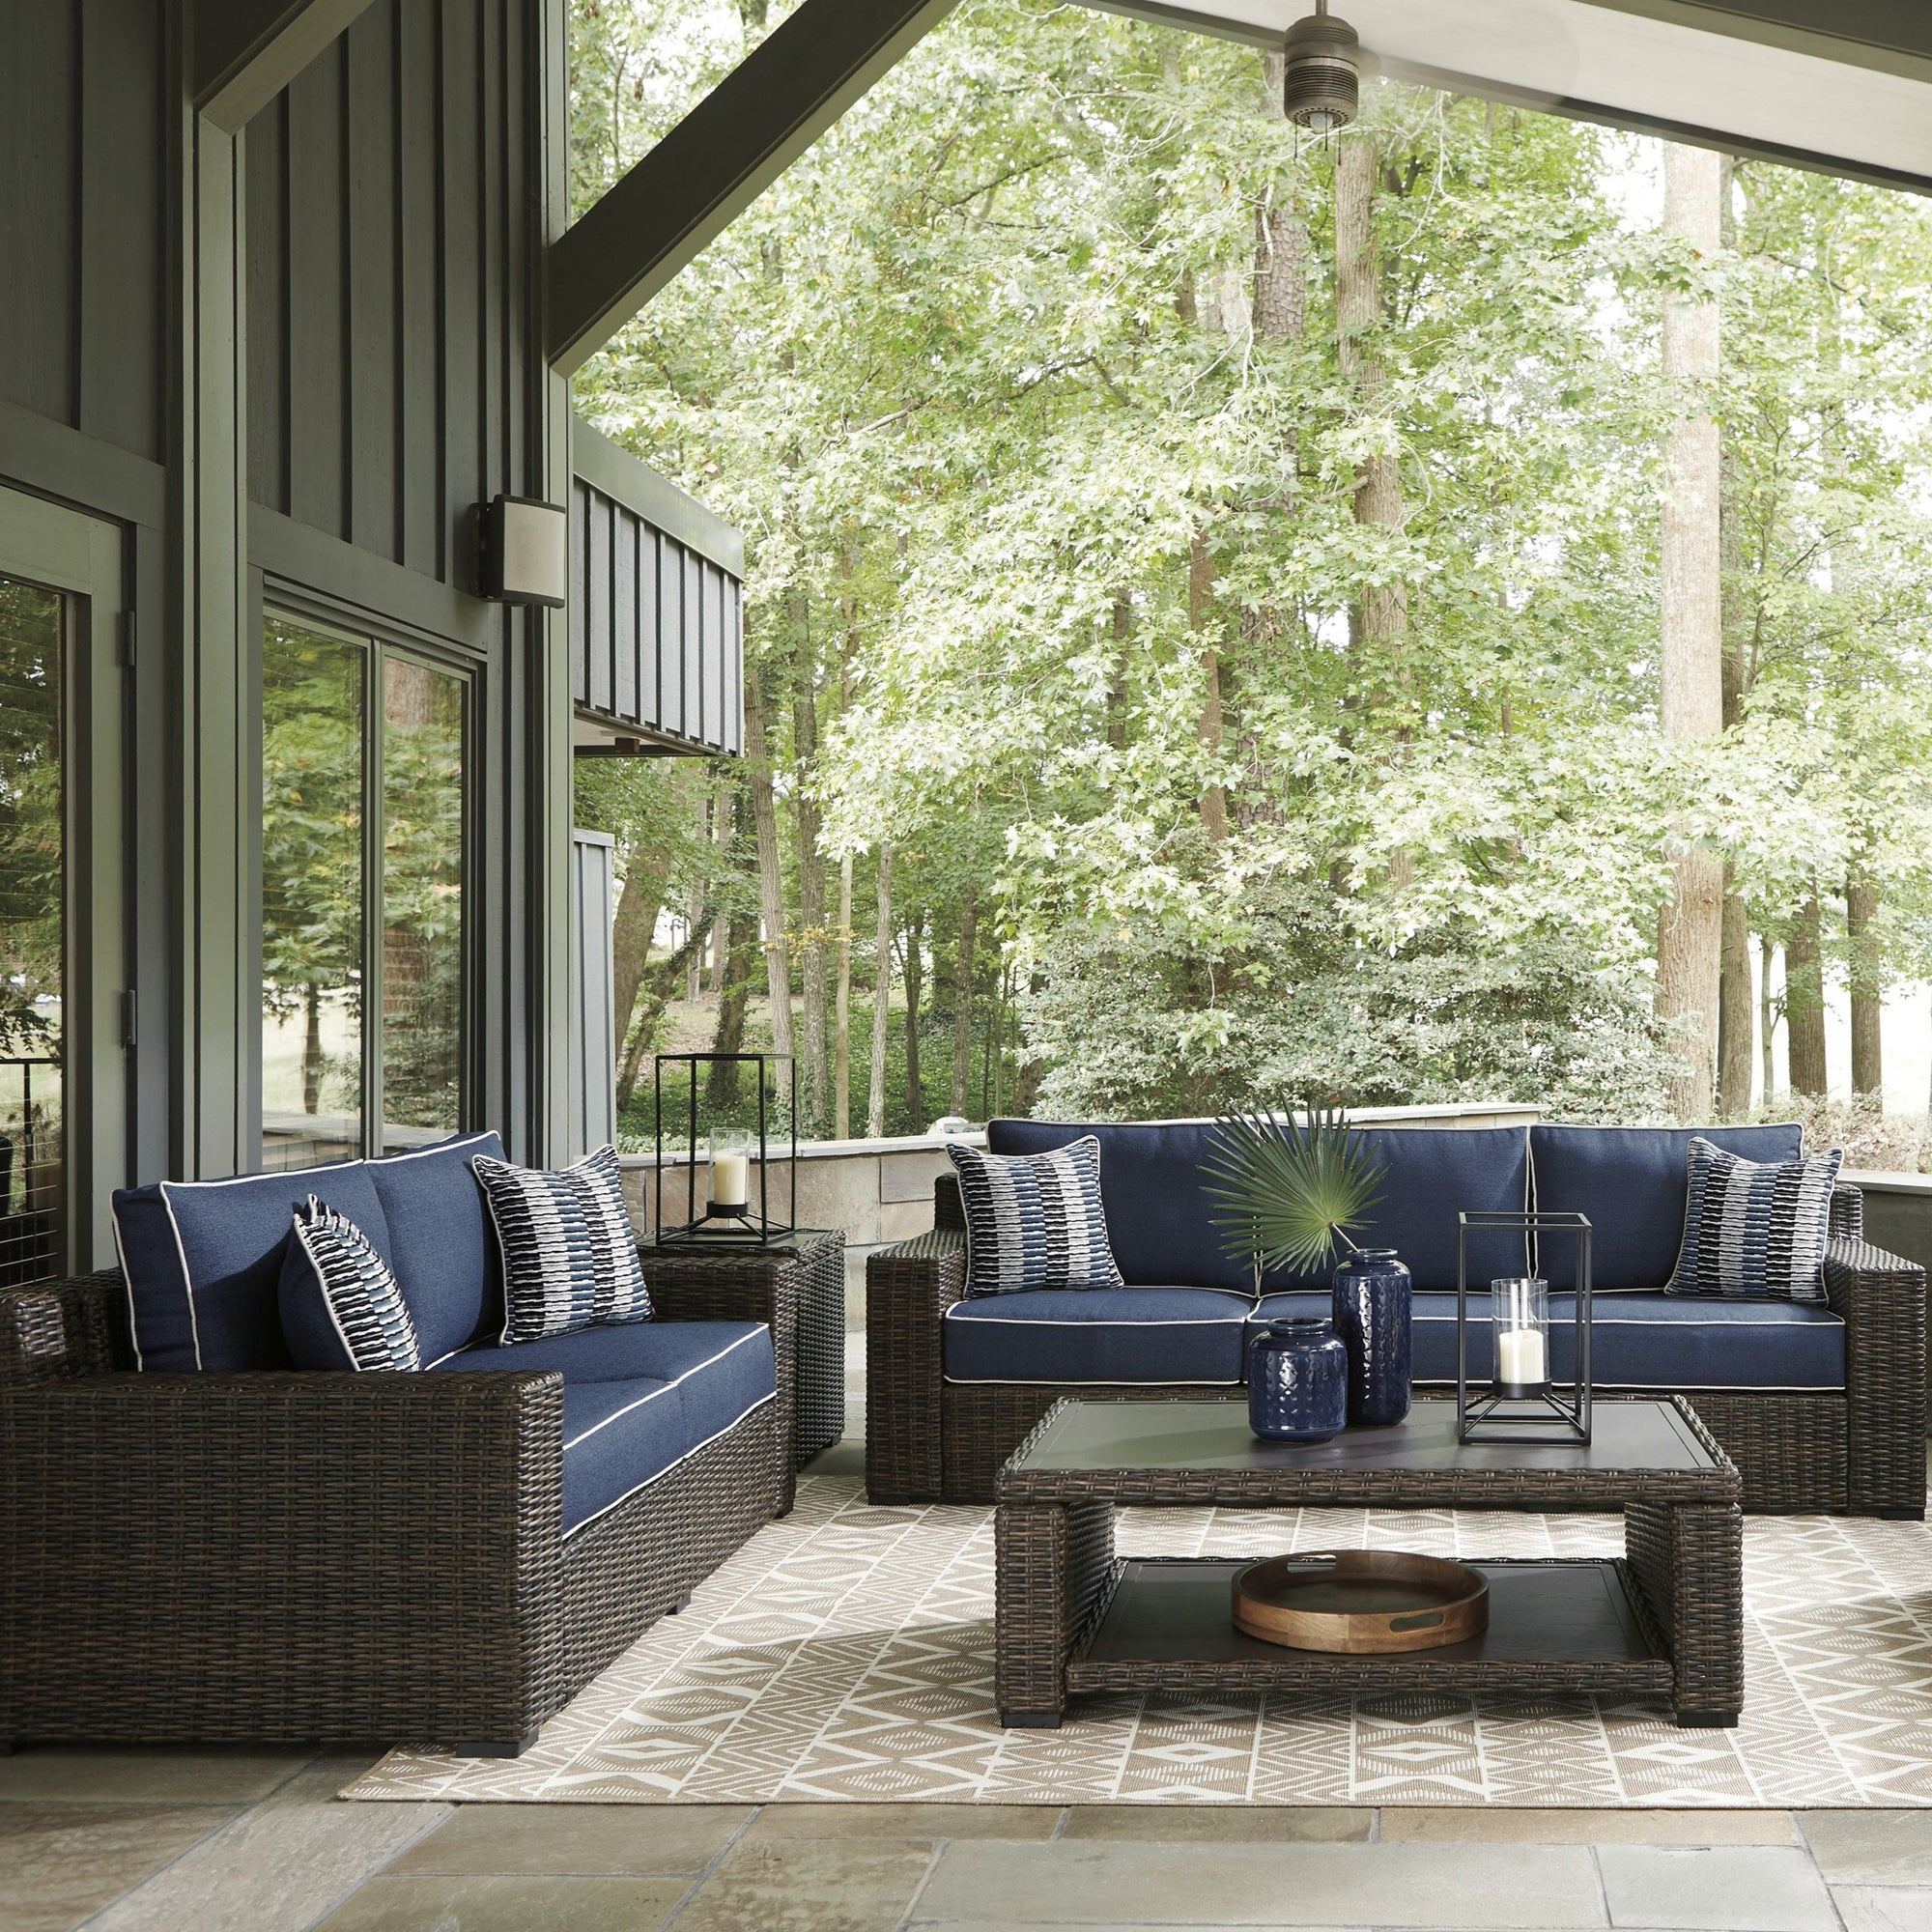 Sag Harbor 3-Piece Outdoor Deep Seating Set (Sofa, Loveseat, Coffee Table)